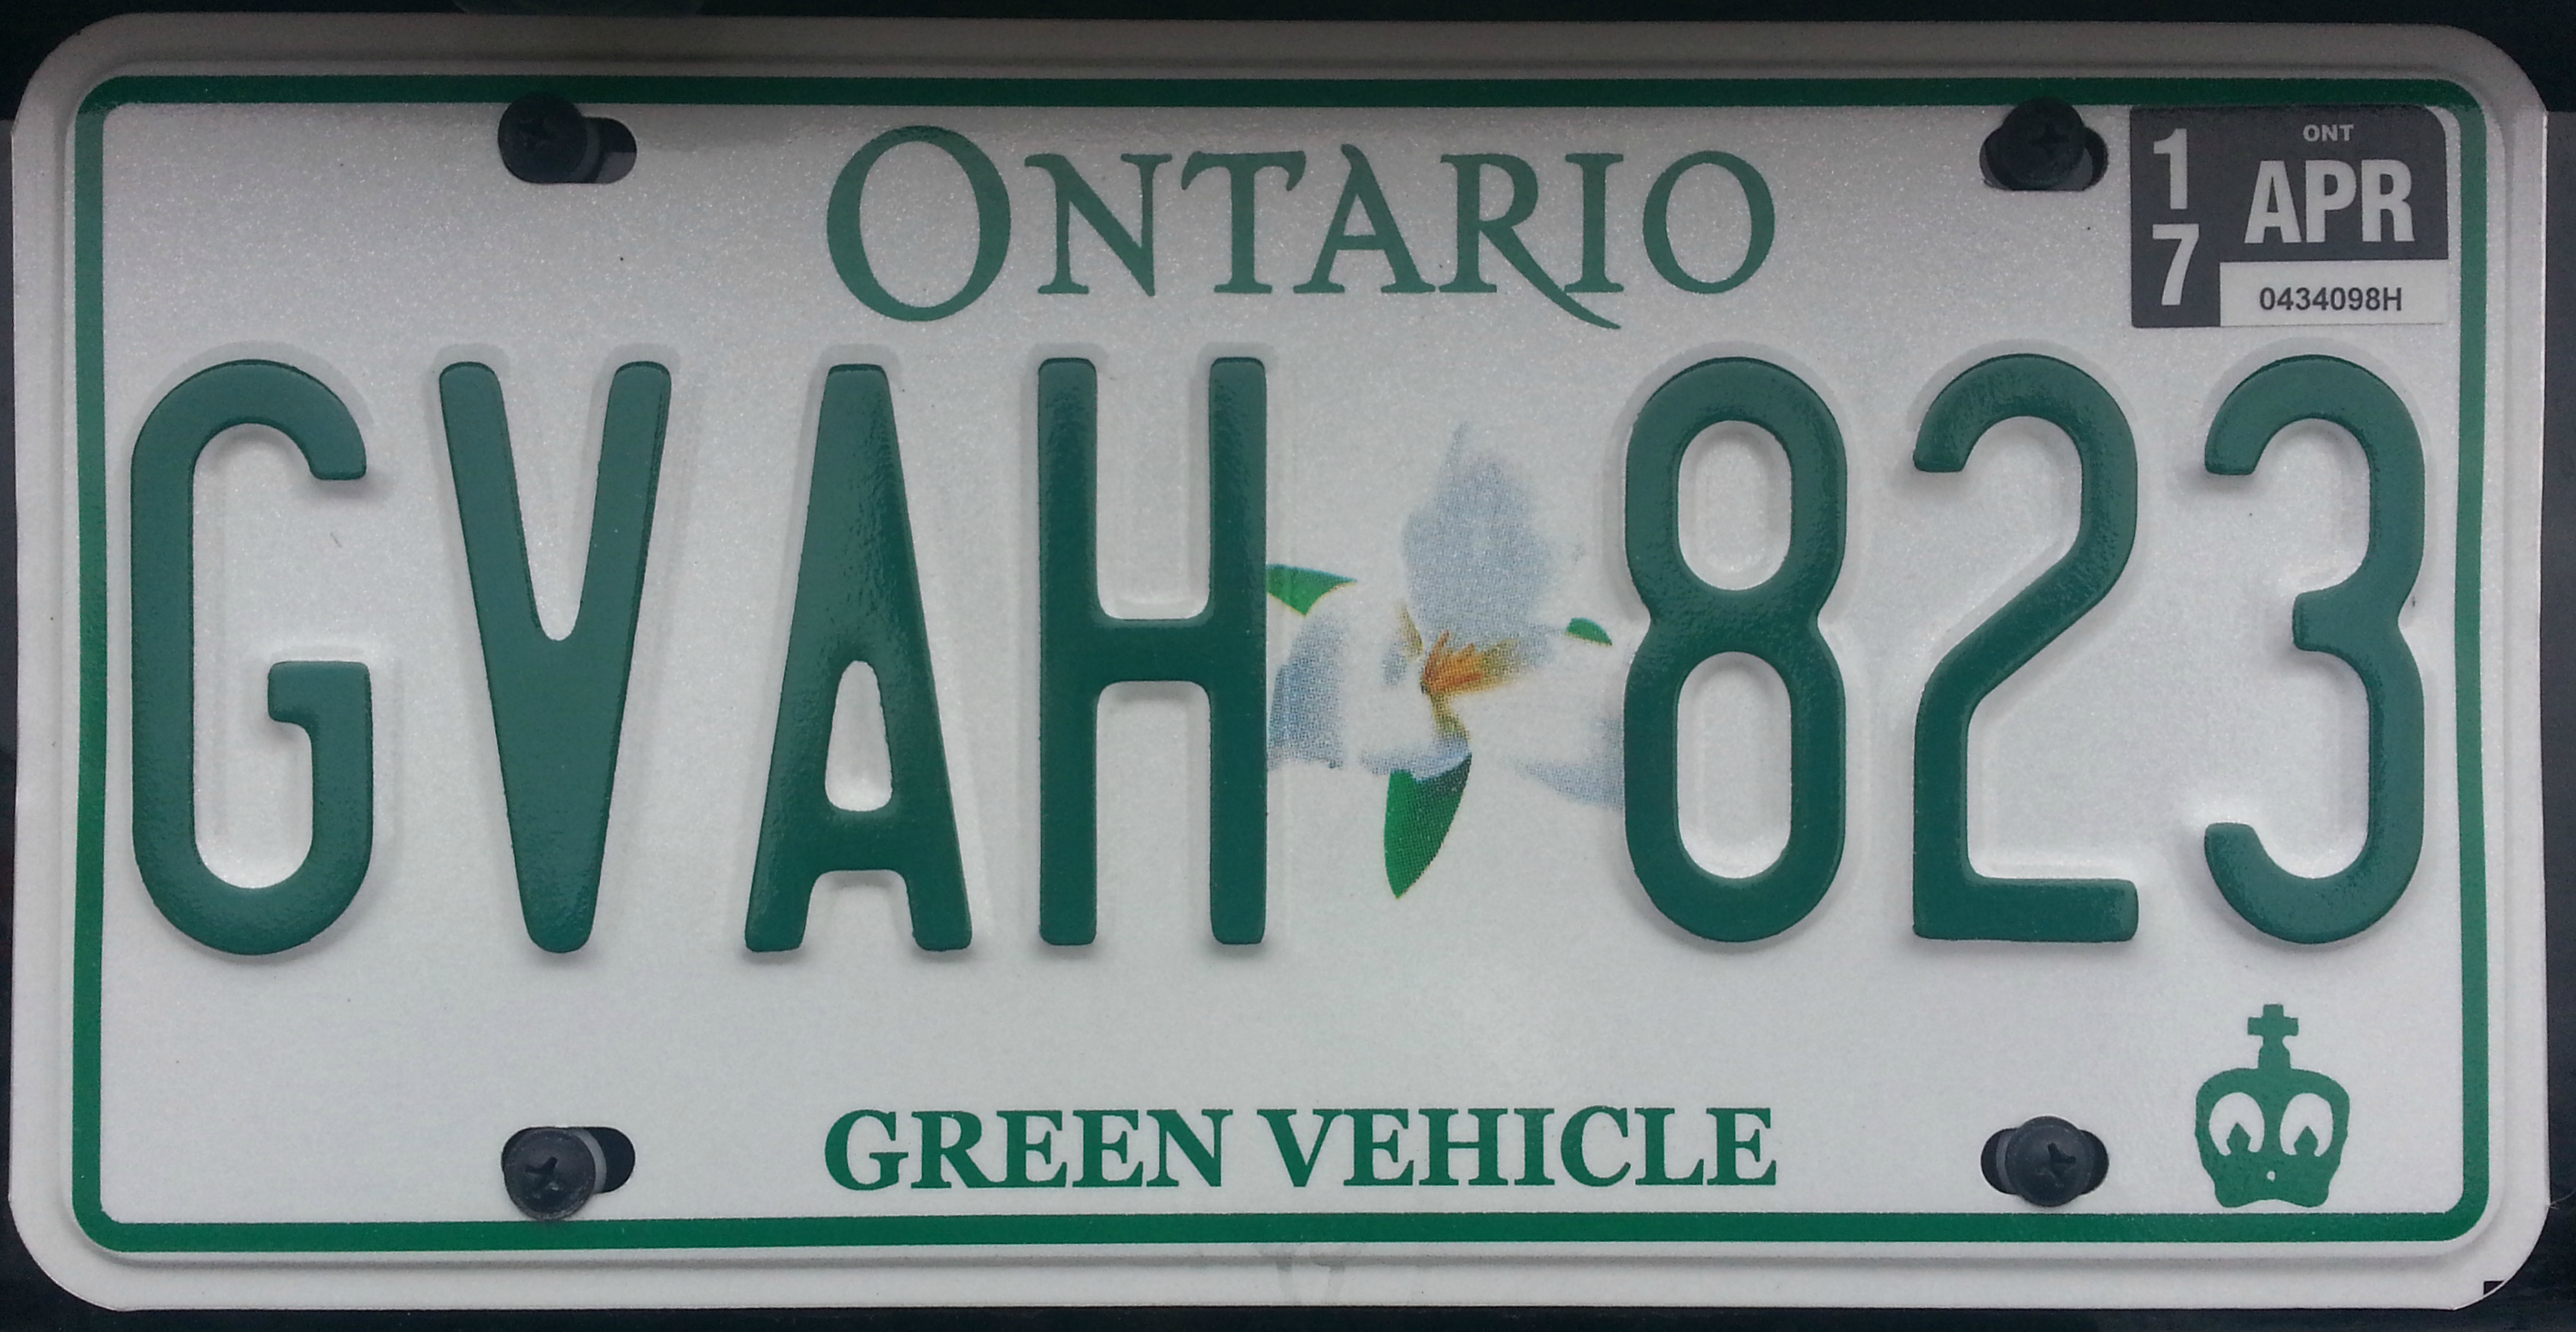 File:2010 Ontario license plate GVAH 823 electric vehicle.png ...